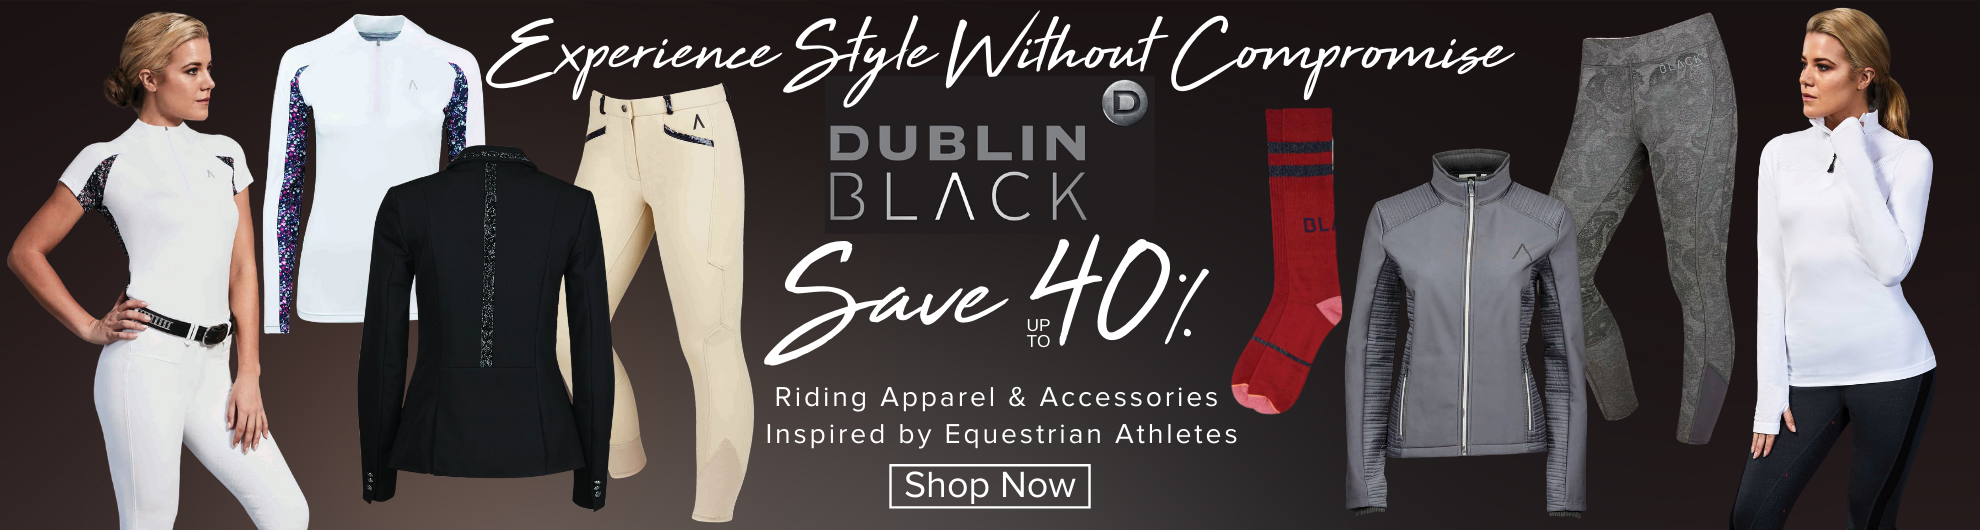 Save up to 40% on Dublin Black Riding Apparel